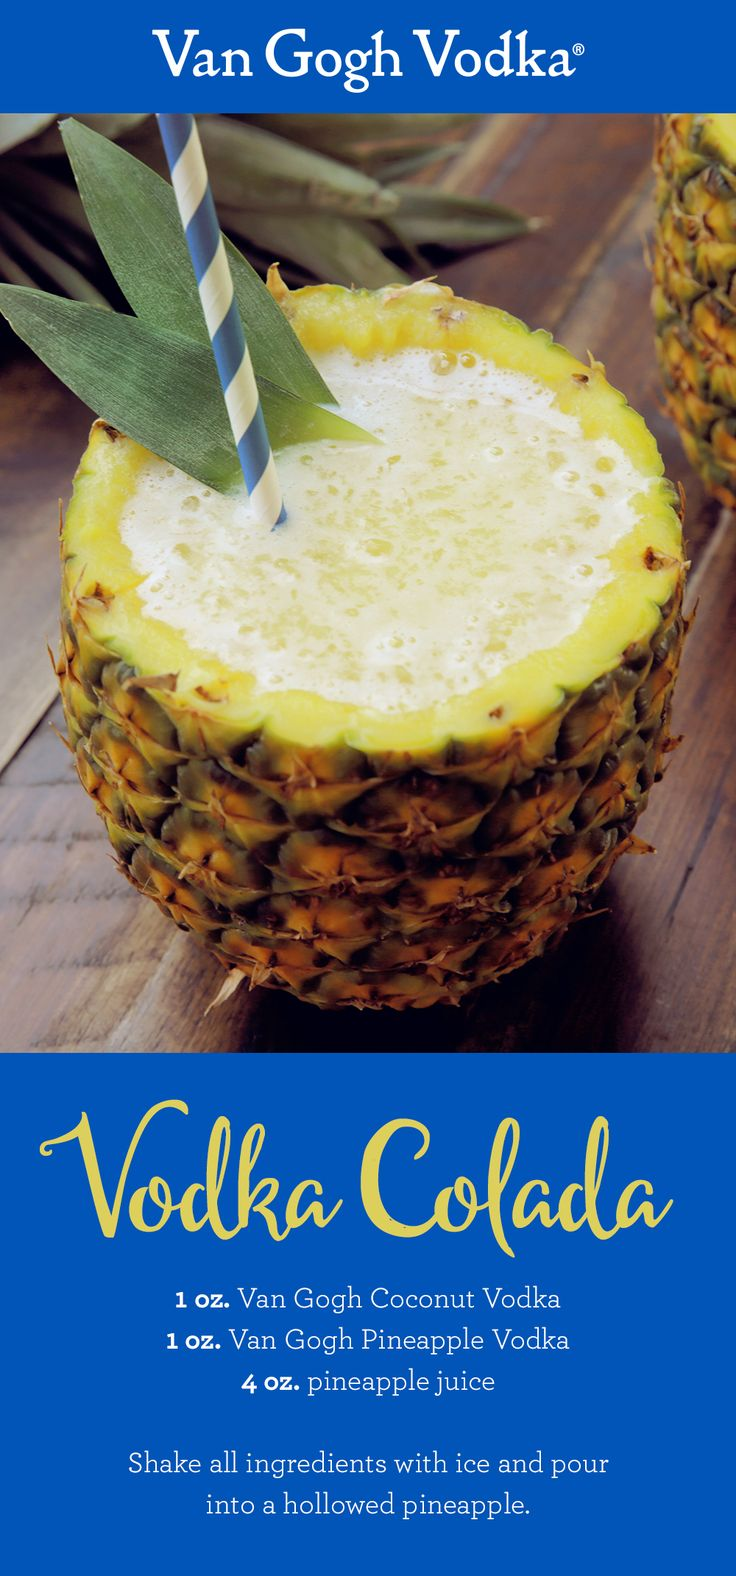 If you like piña coladas, you'll love this Vodka Colada. Shake 1 oz. Van Gogh Coconut Vodka, 1 oz. Van Gogh Pineapple Vodka and pineapple juice. Add to a hollowed out pineapple. Garnish with a pineapple wedge or leaf.